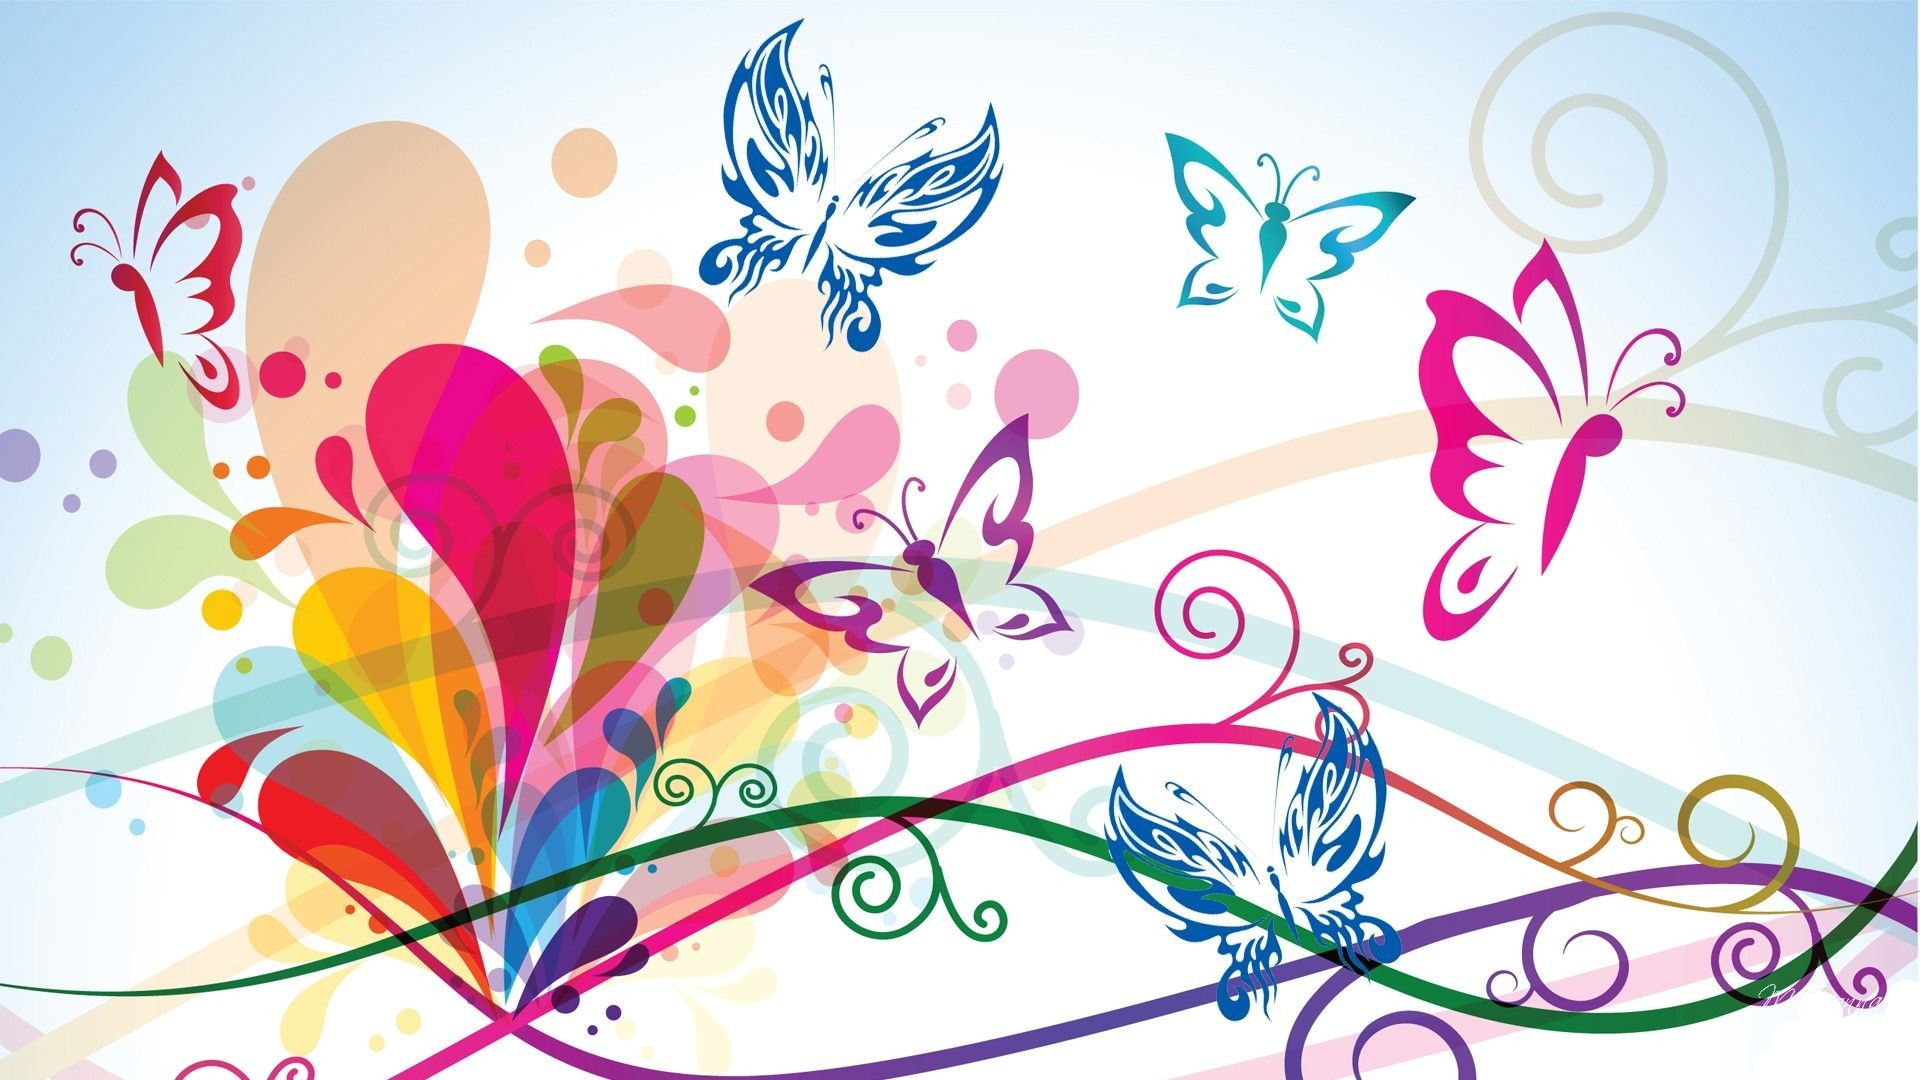 Res: 1920x1080, Abstract Butterfly wallpaper